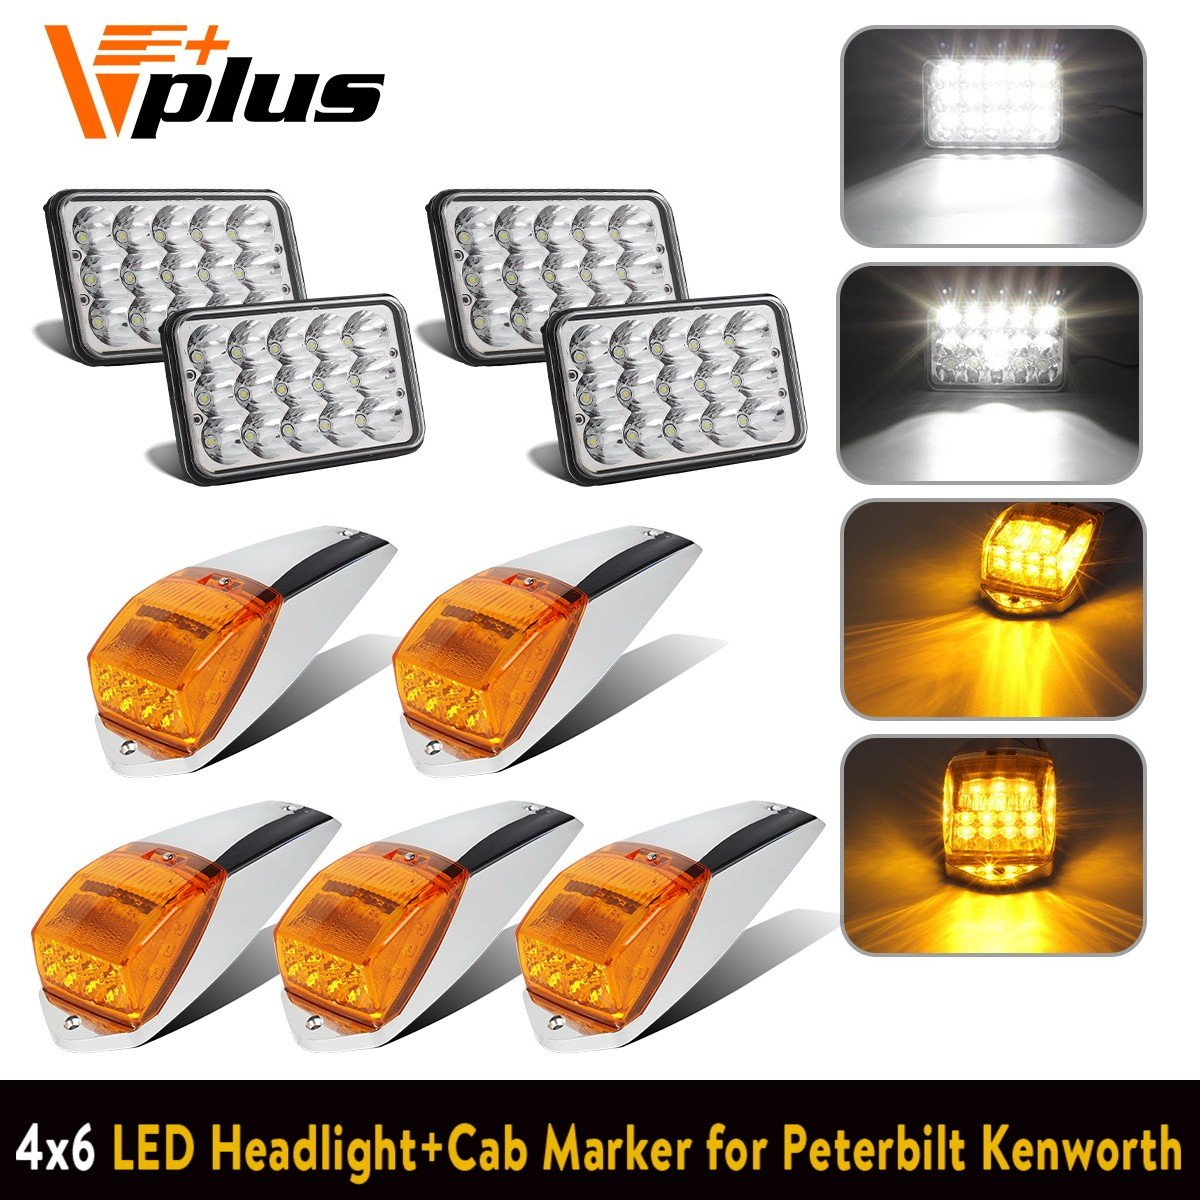 4pc 4x6 inch LED Headlight Sealed Dual Hi/Lo Beam White Rectangular H4651 H4666 H4656 H6545 H4652 H6545+ 5x Cab Marker Clearance Roof Light 17 LED Amber/Yellow for Peterbilt Kenworth Freightliner Mack Partsam